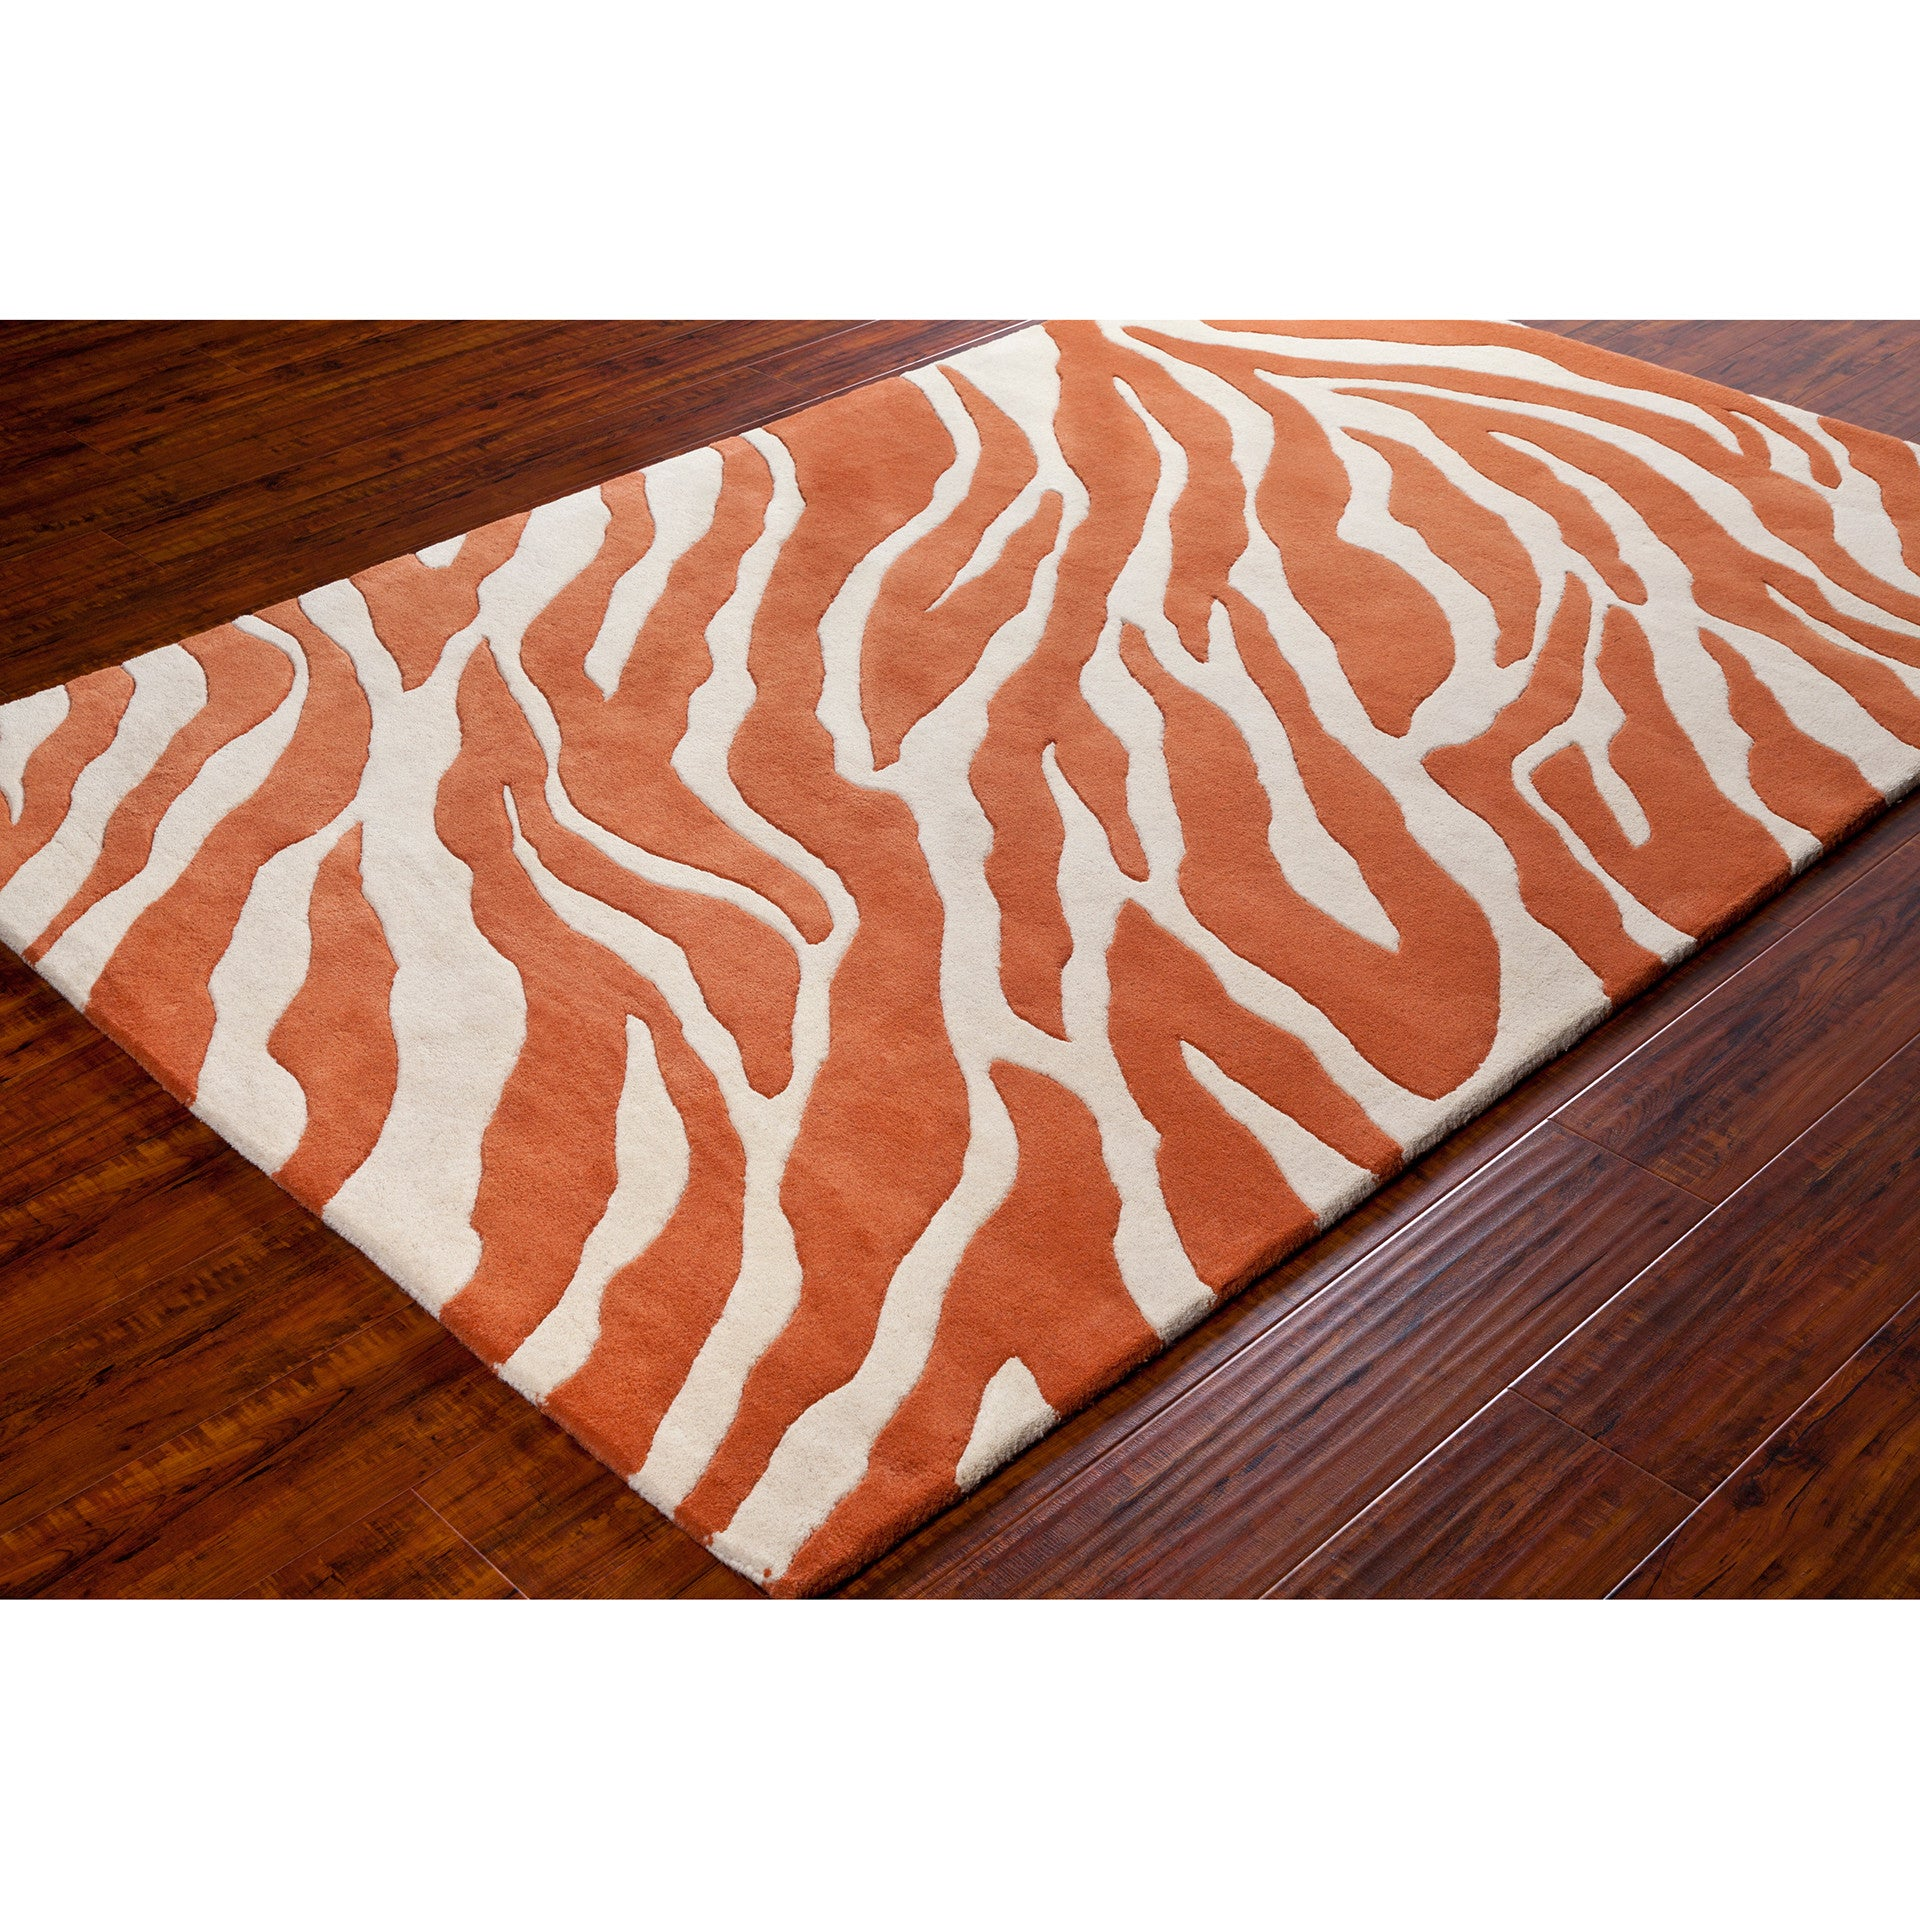 Stella Collection Hand Tufted Area Rug In Beige Light: Stella Collection Hand-Tufted Area Rug In Orange & White